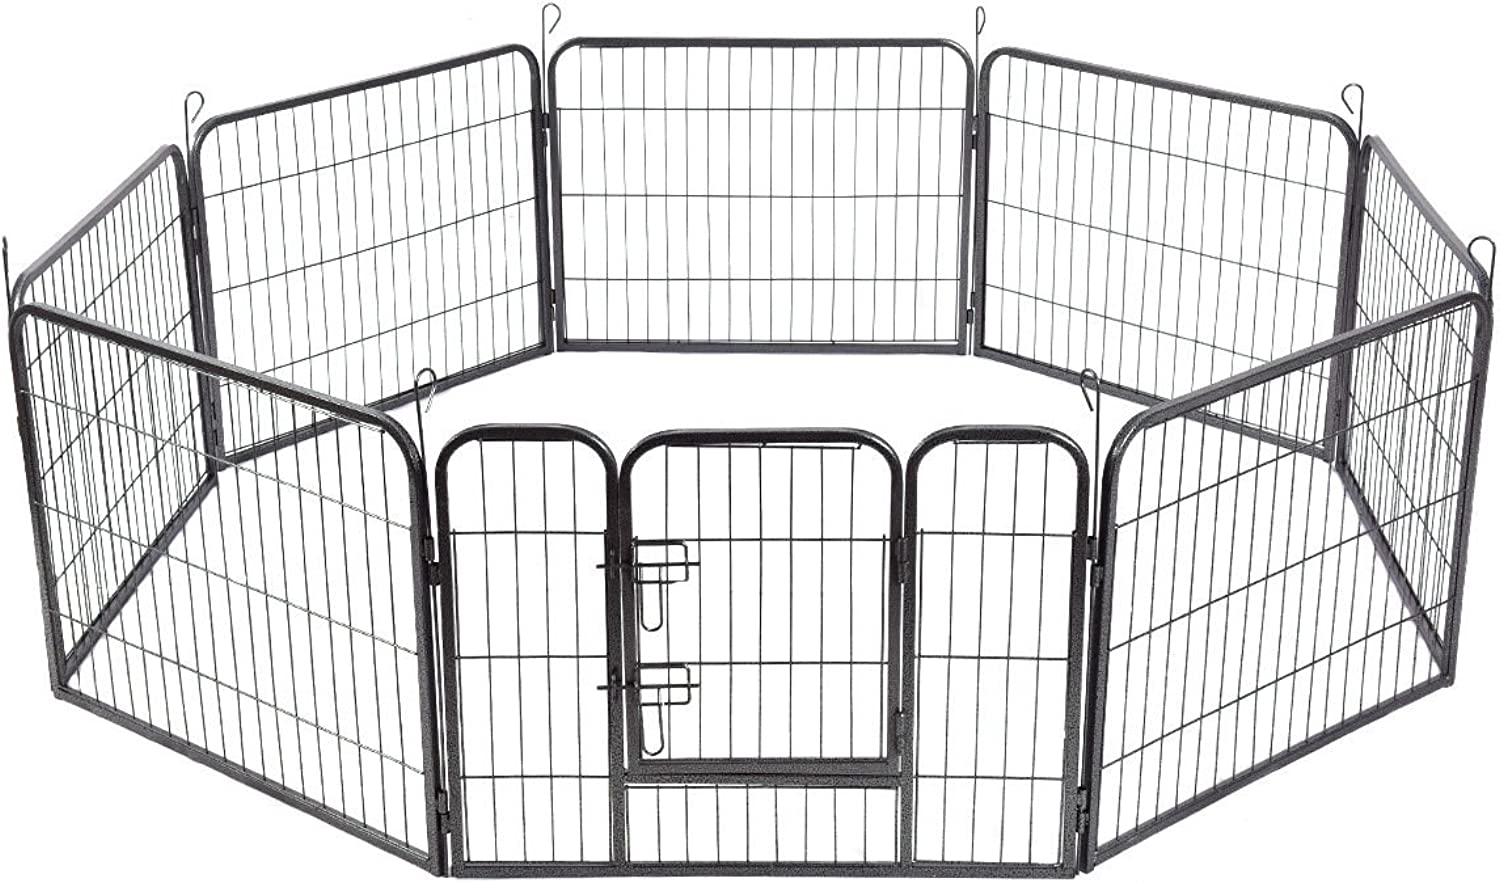 Heavy Duty Puppy Play Pen Dog Pen for Dogs Cat Rabbit Guinea Pig Run Foldable Playpen Indoor Outdoor Black 8 Panel (S(Height 60cm))